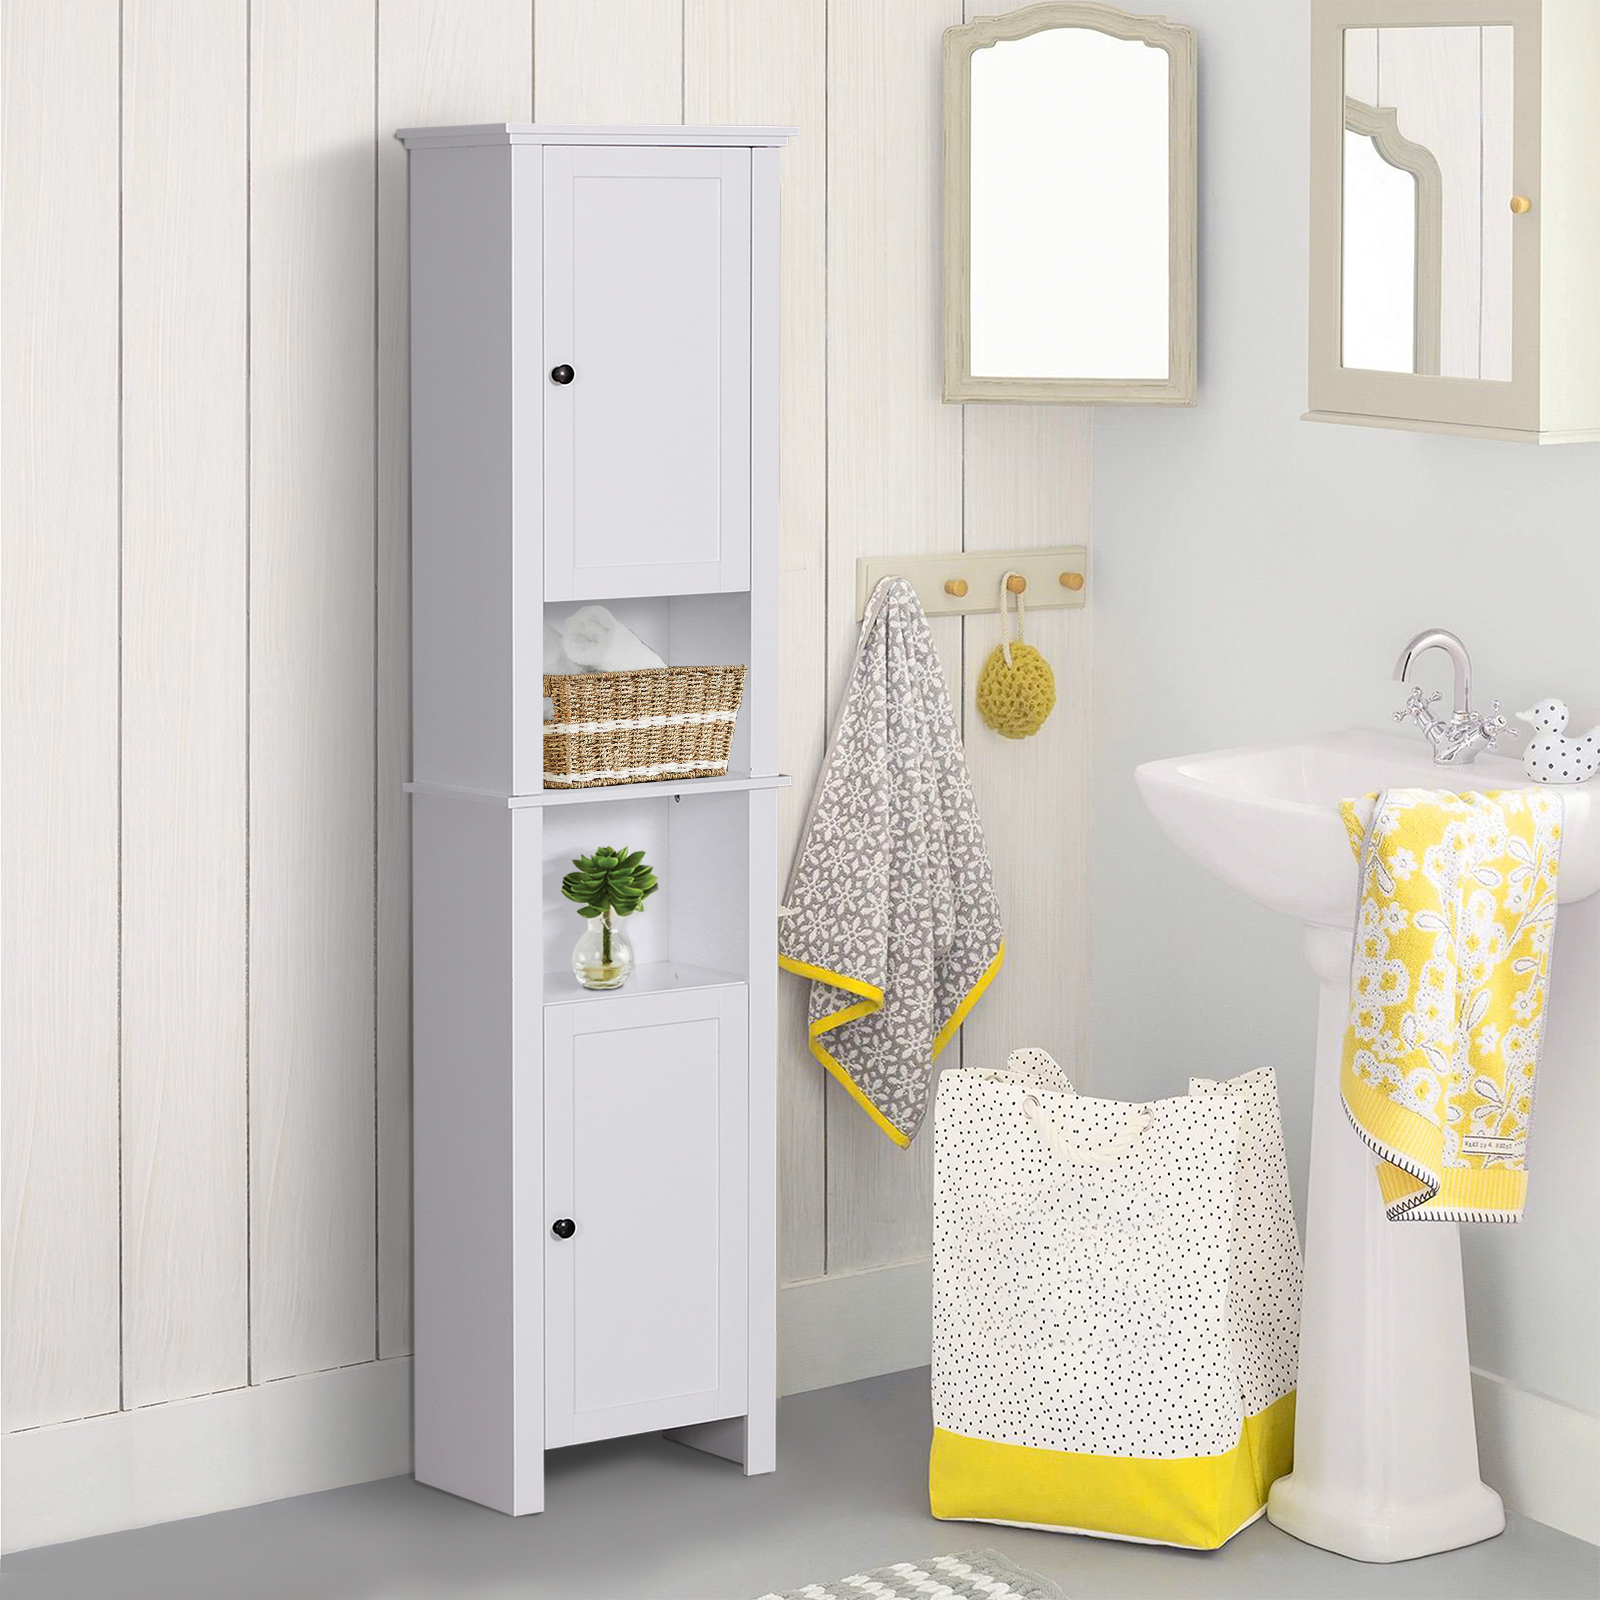 . Details about 67  Wooden Tall Free Standing Stand Alone Bathroom Linen  Tower Storage Cabinet